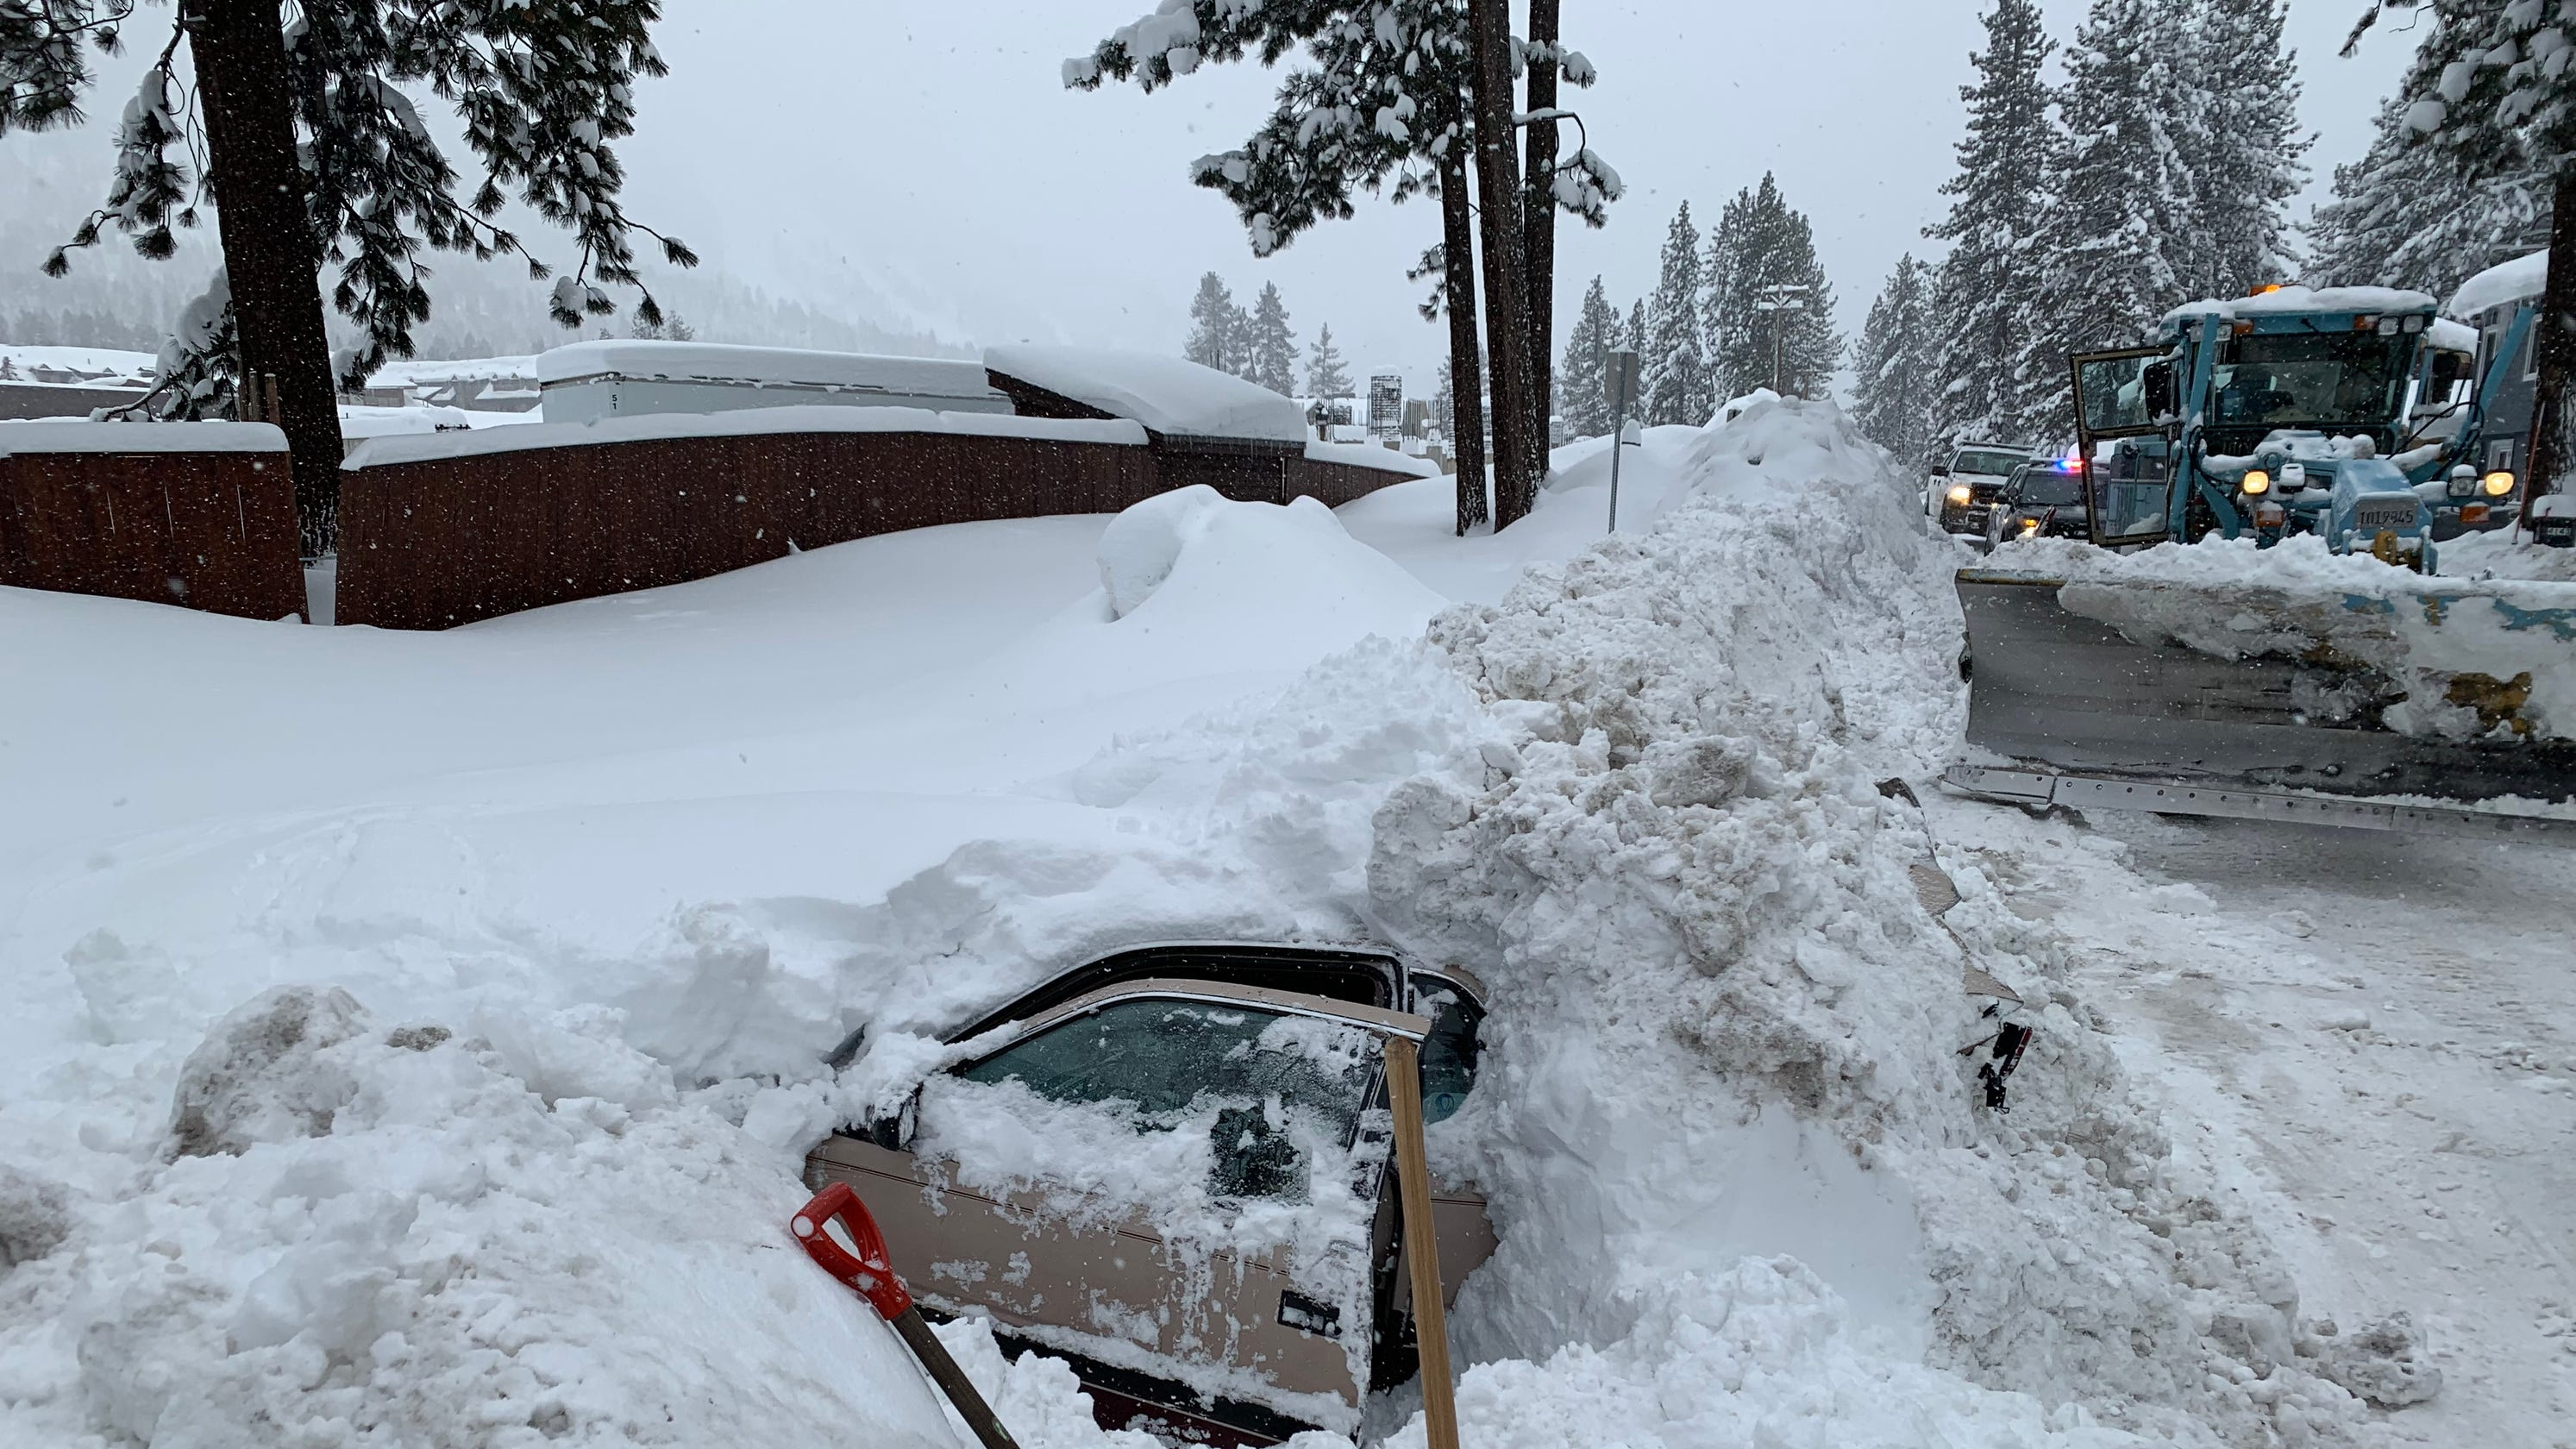 Tahoe officials: Woman trapped in car hit by snowplow got lucky